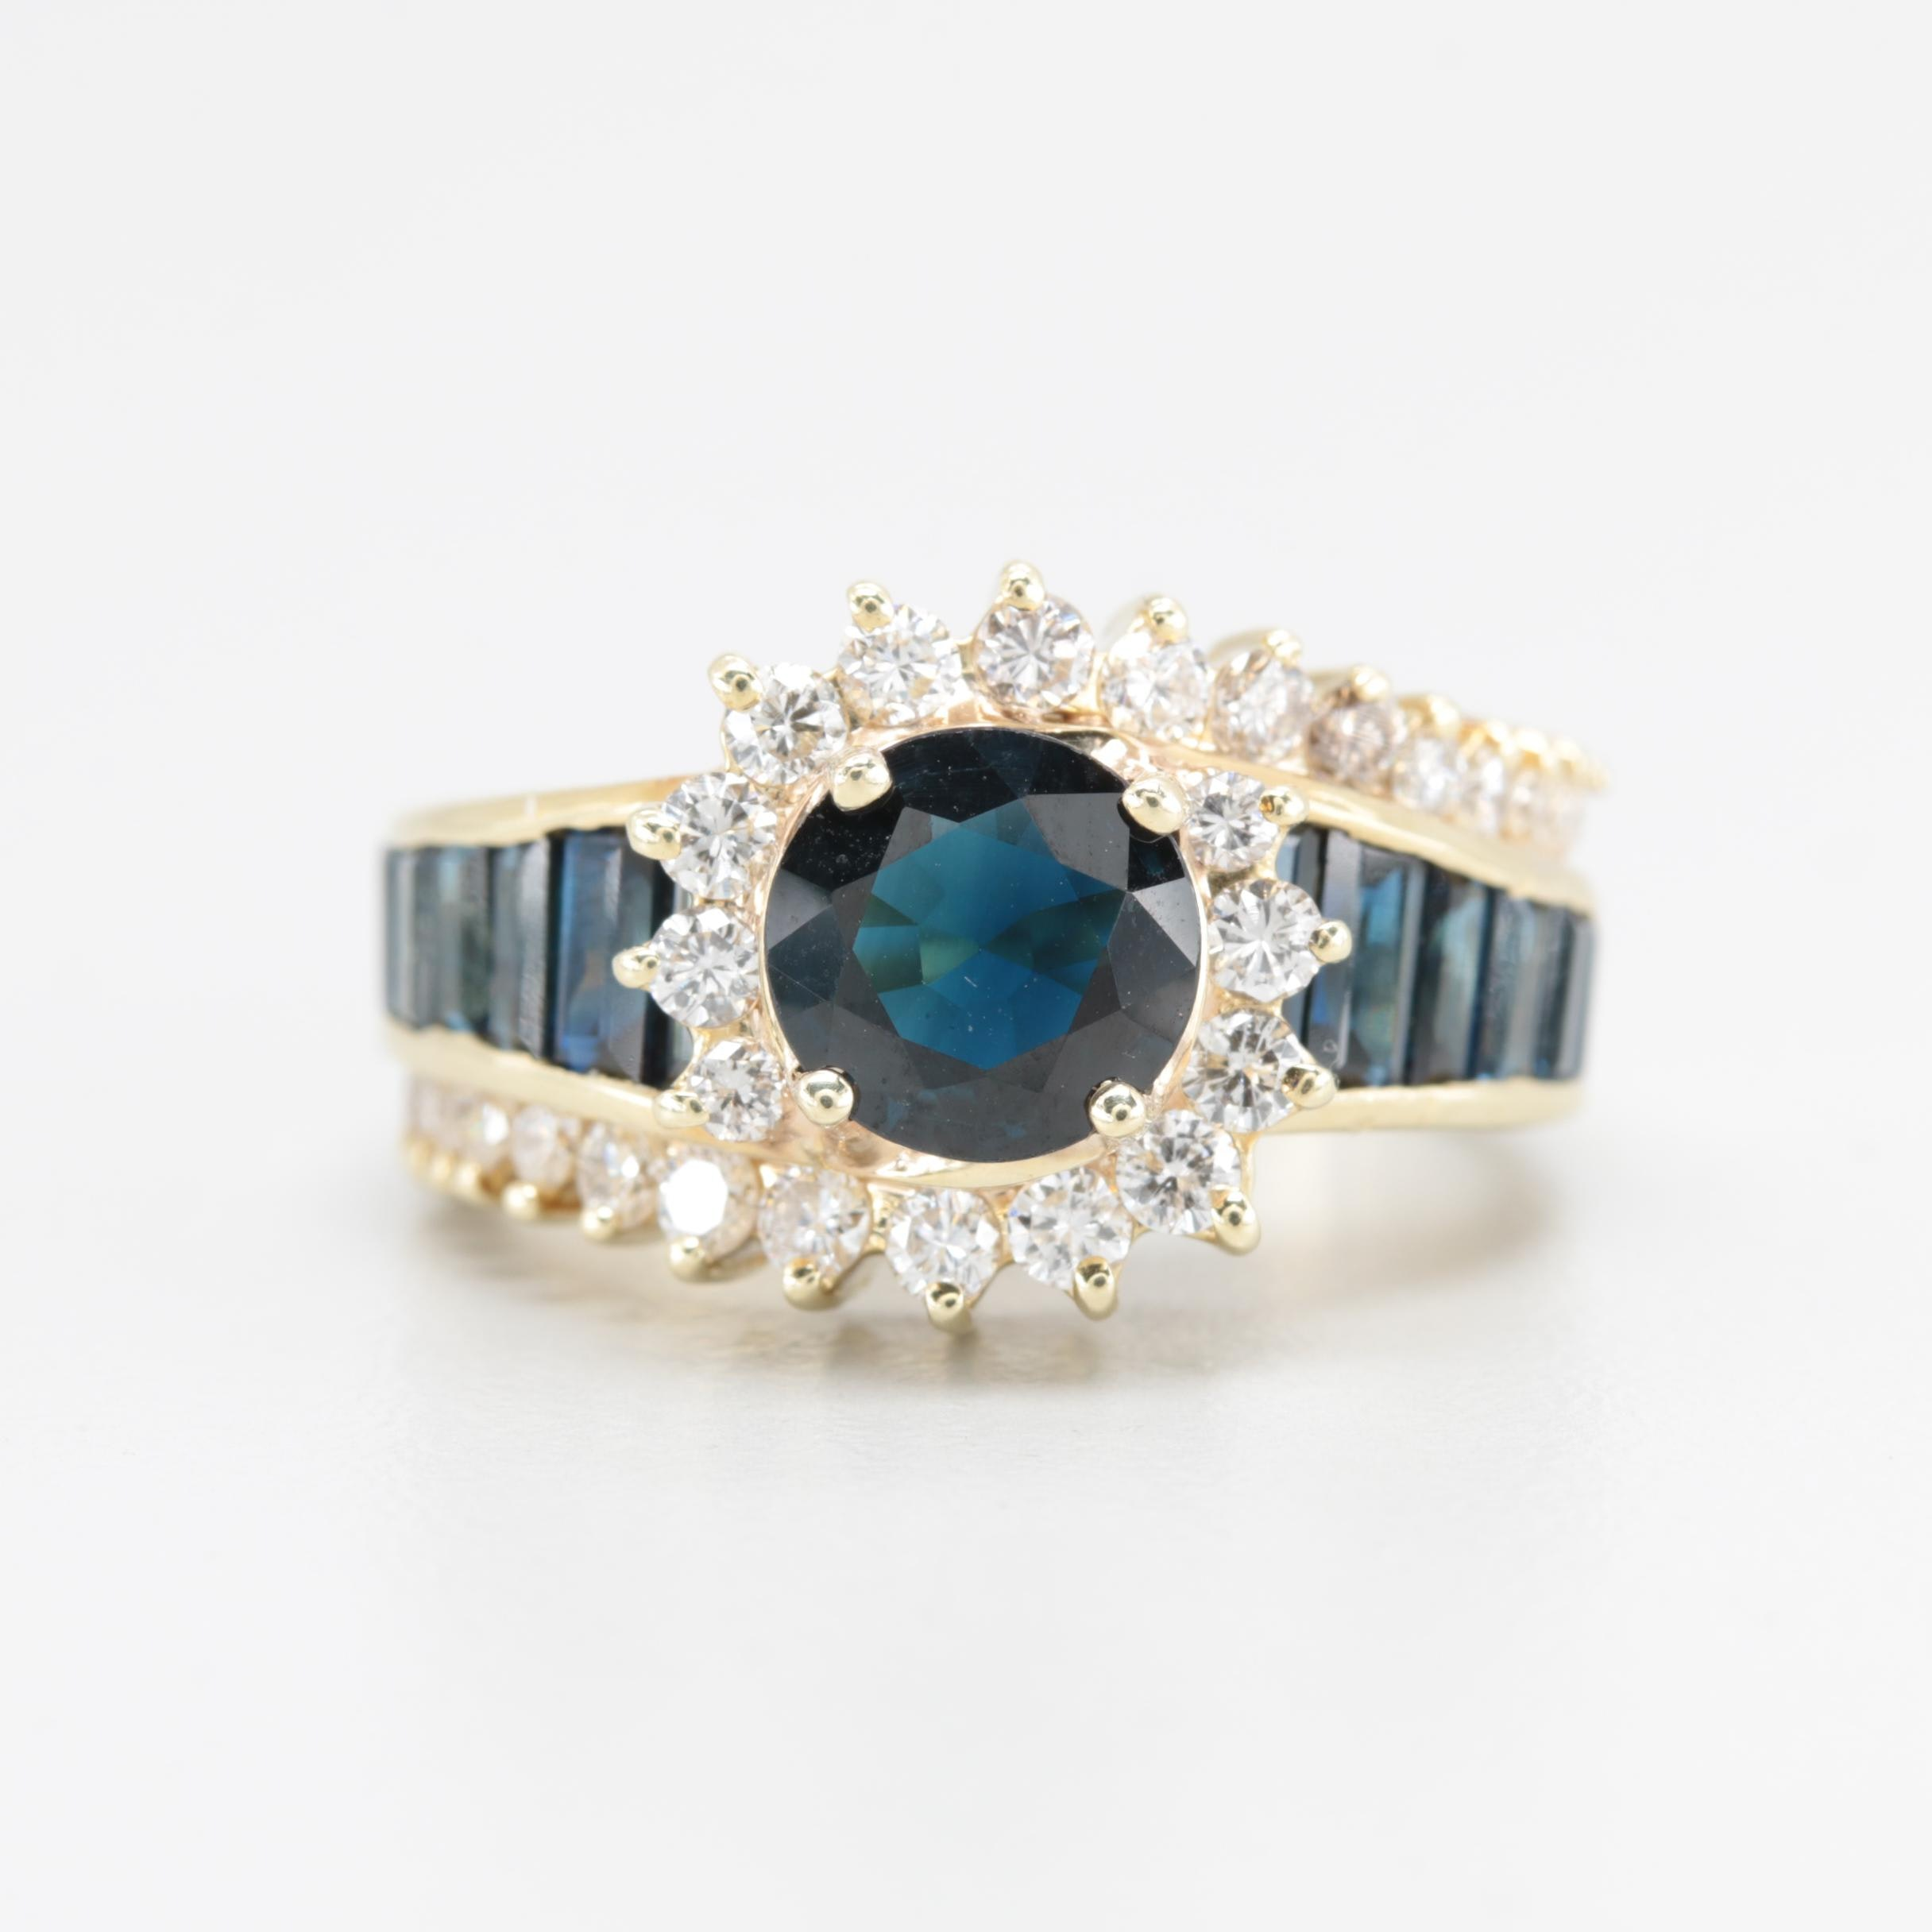 14K Yellow Gold 1.11 CT Sapphire and Daimond Ring